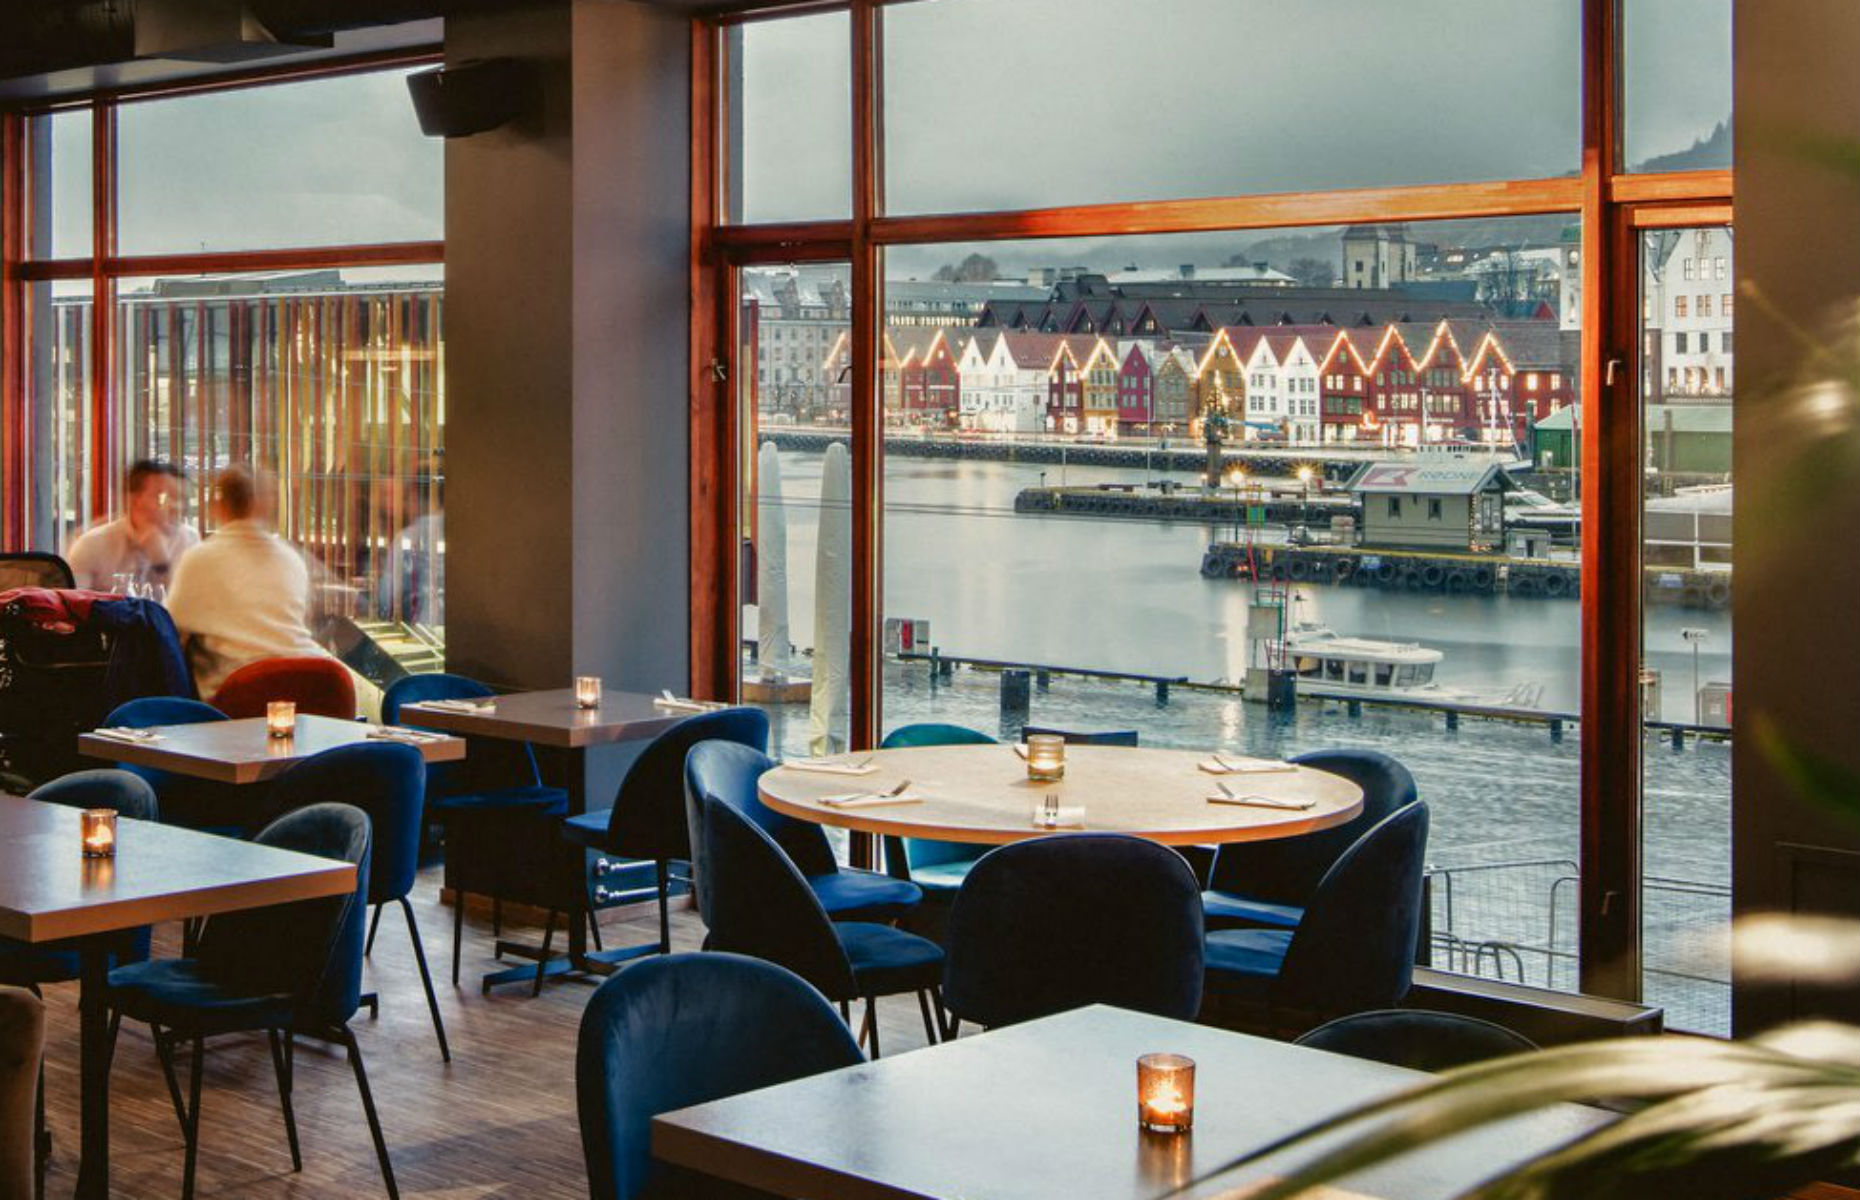 A table at Bjerck restaurant and bar with a view of the harbour (Image: Bjerck Restaurant & Bar/Facebook)